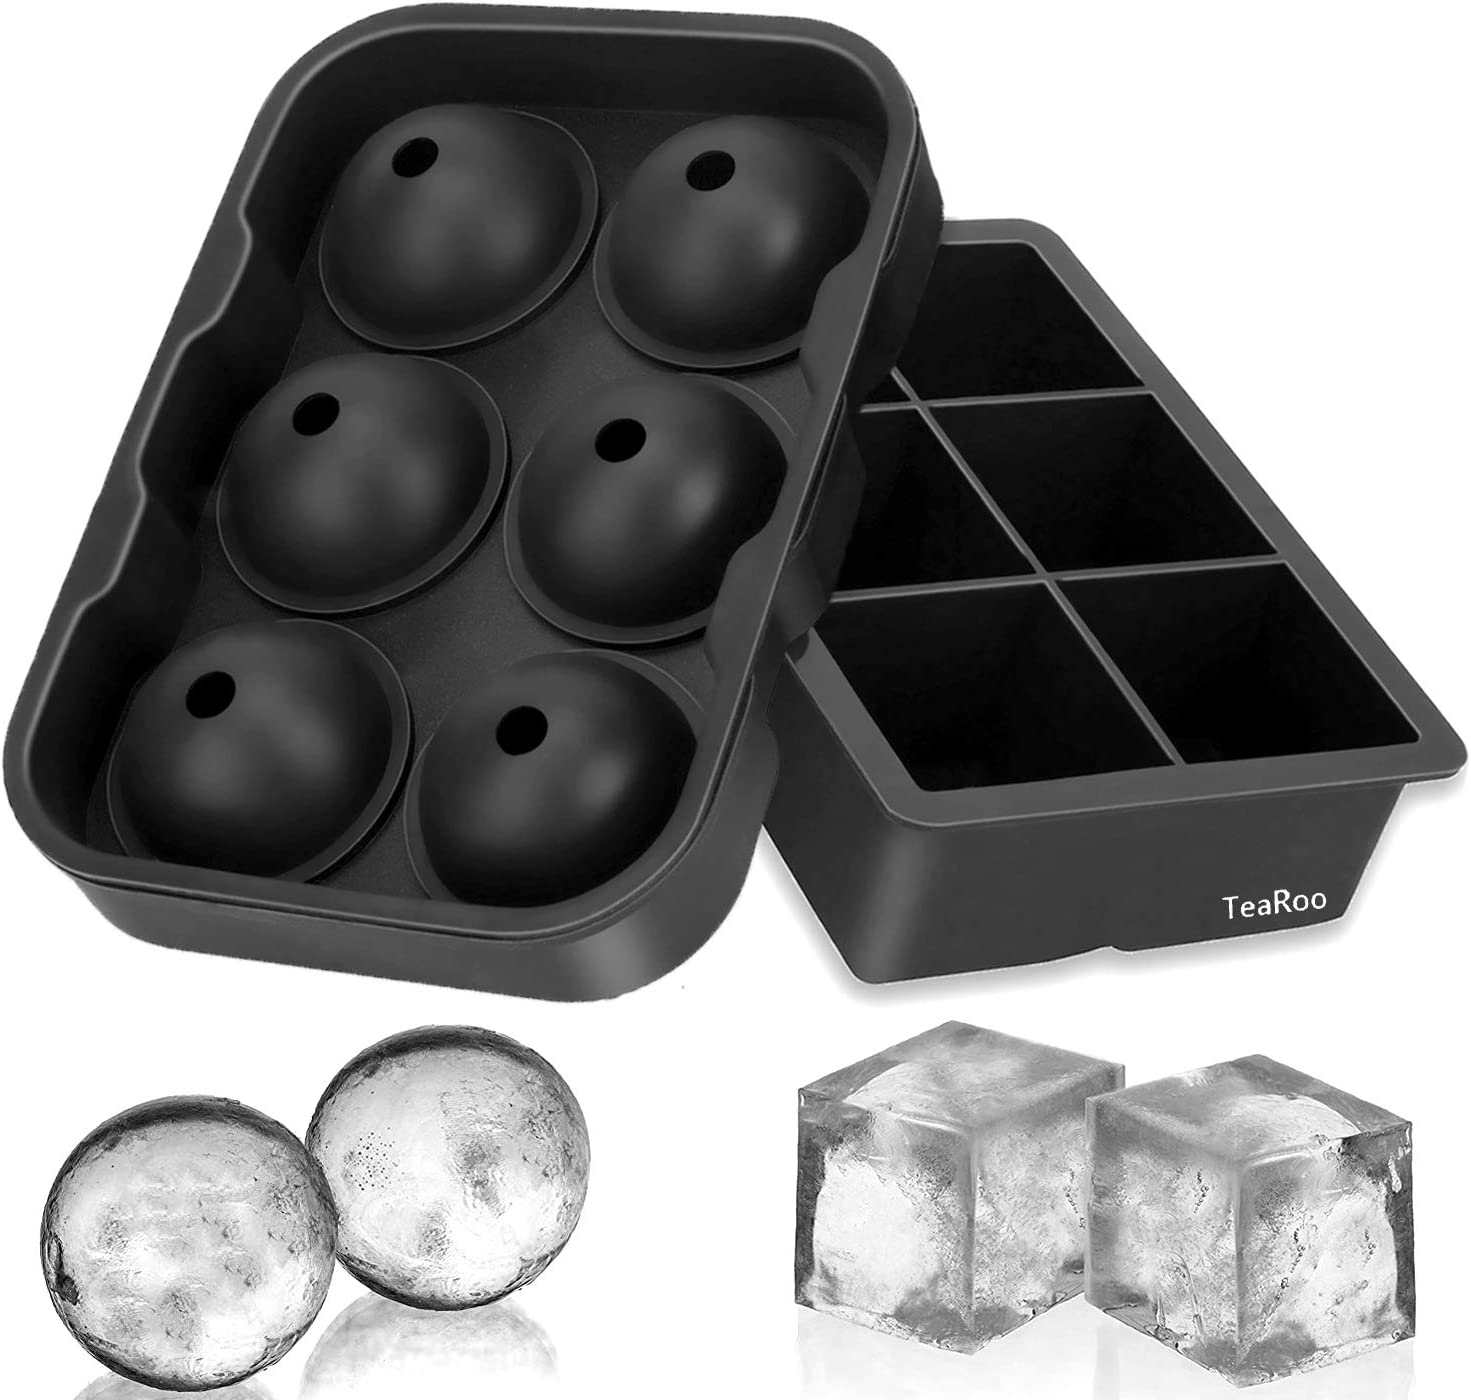 Ice Cube Trays Silicone Set of 2, TeaRoo Sphere Ice Ball Maker with Lid and Large Square Ice Cube Molds for Whiskey, Reusable and BPA Free